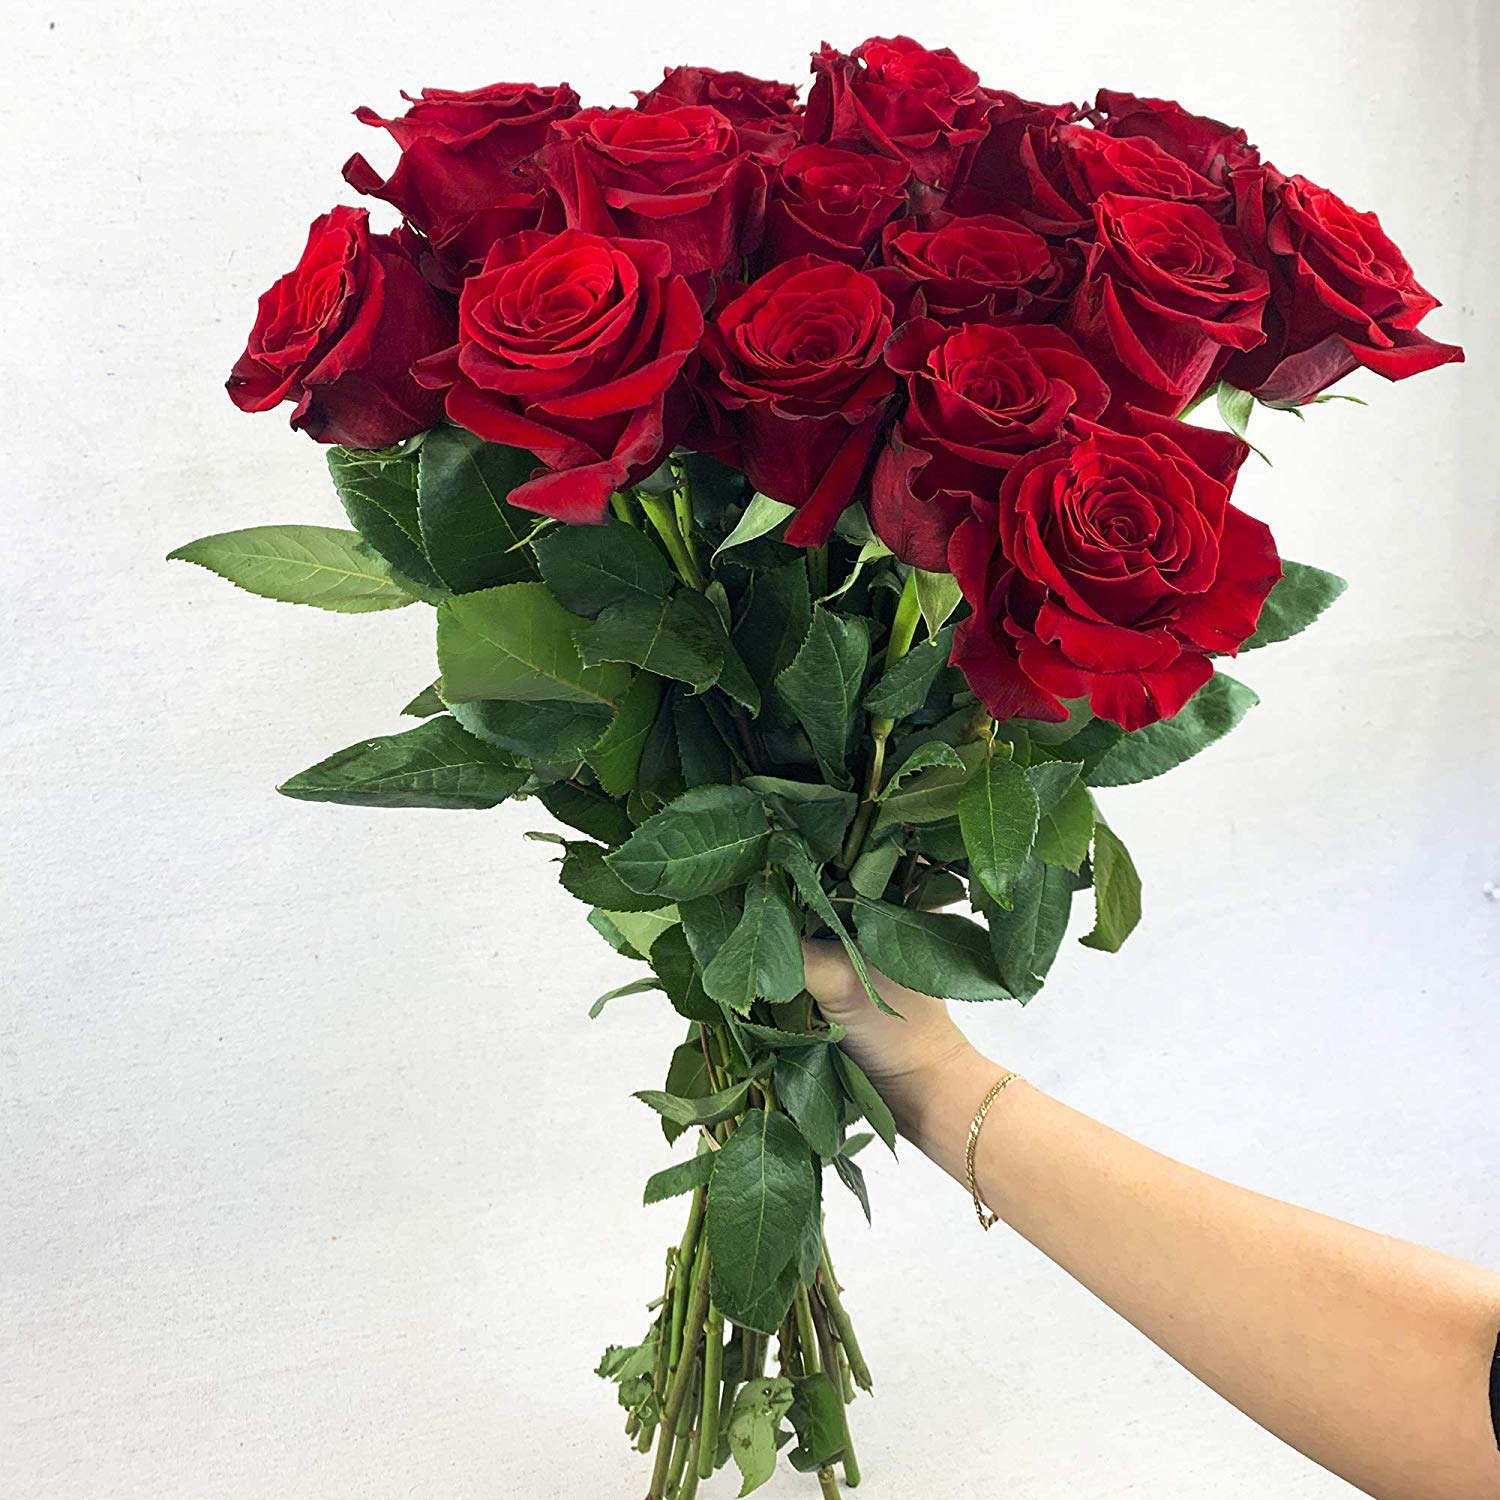 Green Choice Flowers - 24 (2 Dozen) Premium Red Fresh Roses with 20 inch Long Stem Farm Fresh Flowers Beautiful Red Rose Flower Cut Per Order Direct from Farm Fast Free Delivery Long Lasting by Greenchoiceflowers (Image #4)